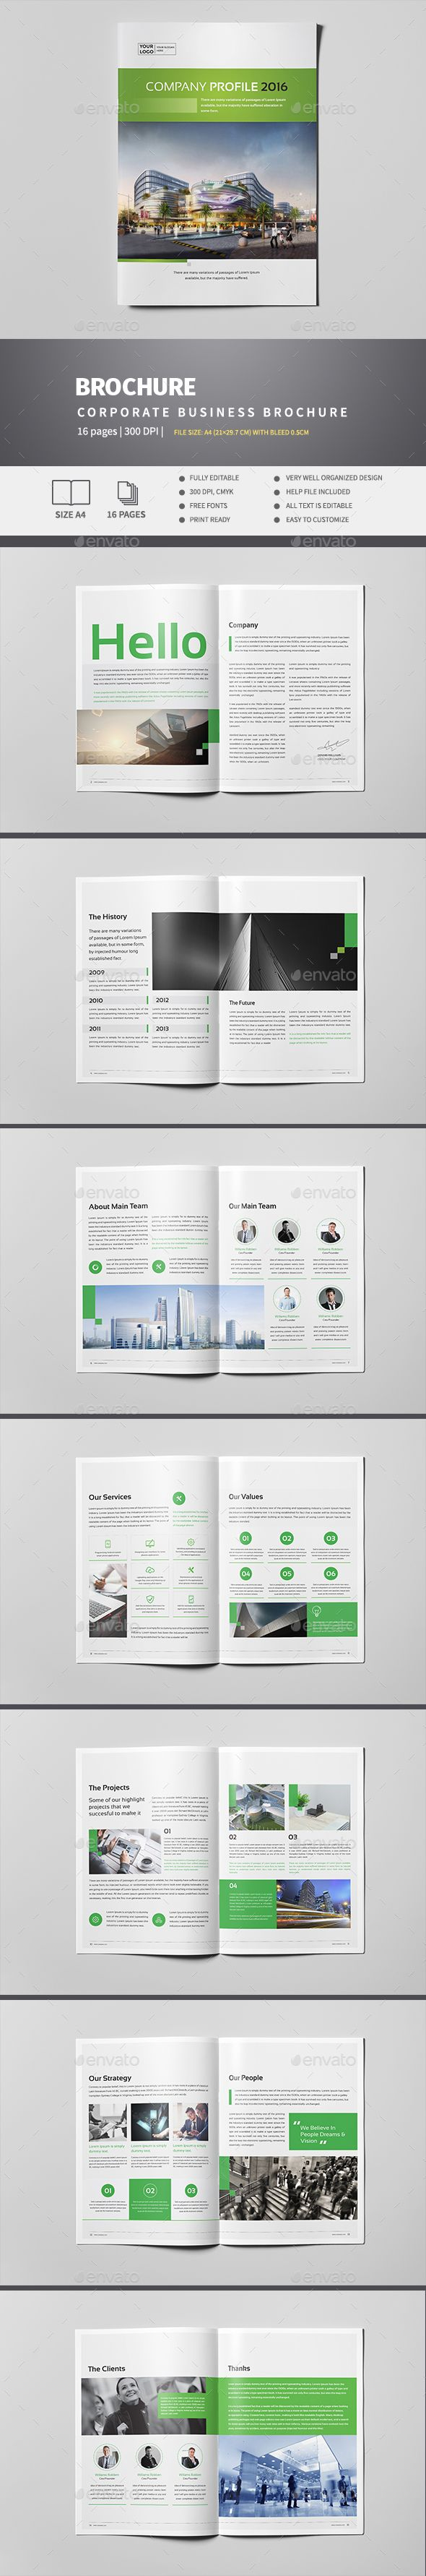 Company Profile Pages Pinterest Company Profile Brochure - Company profile brochure template